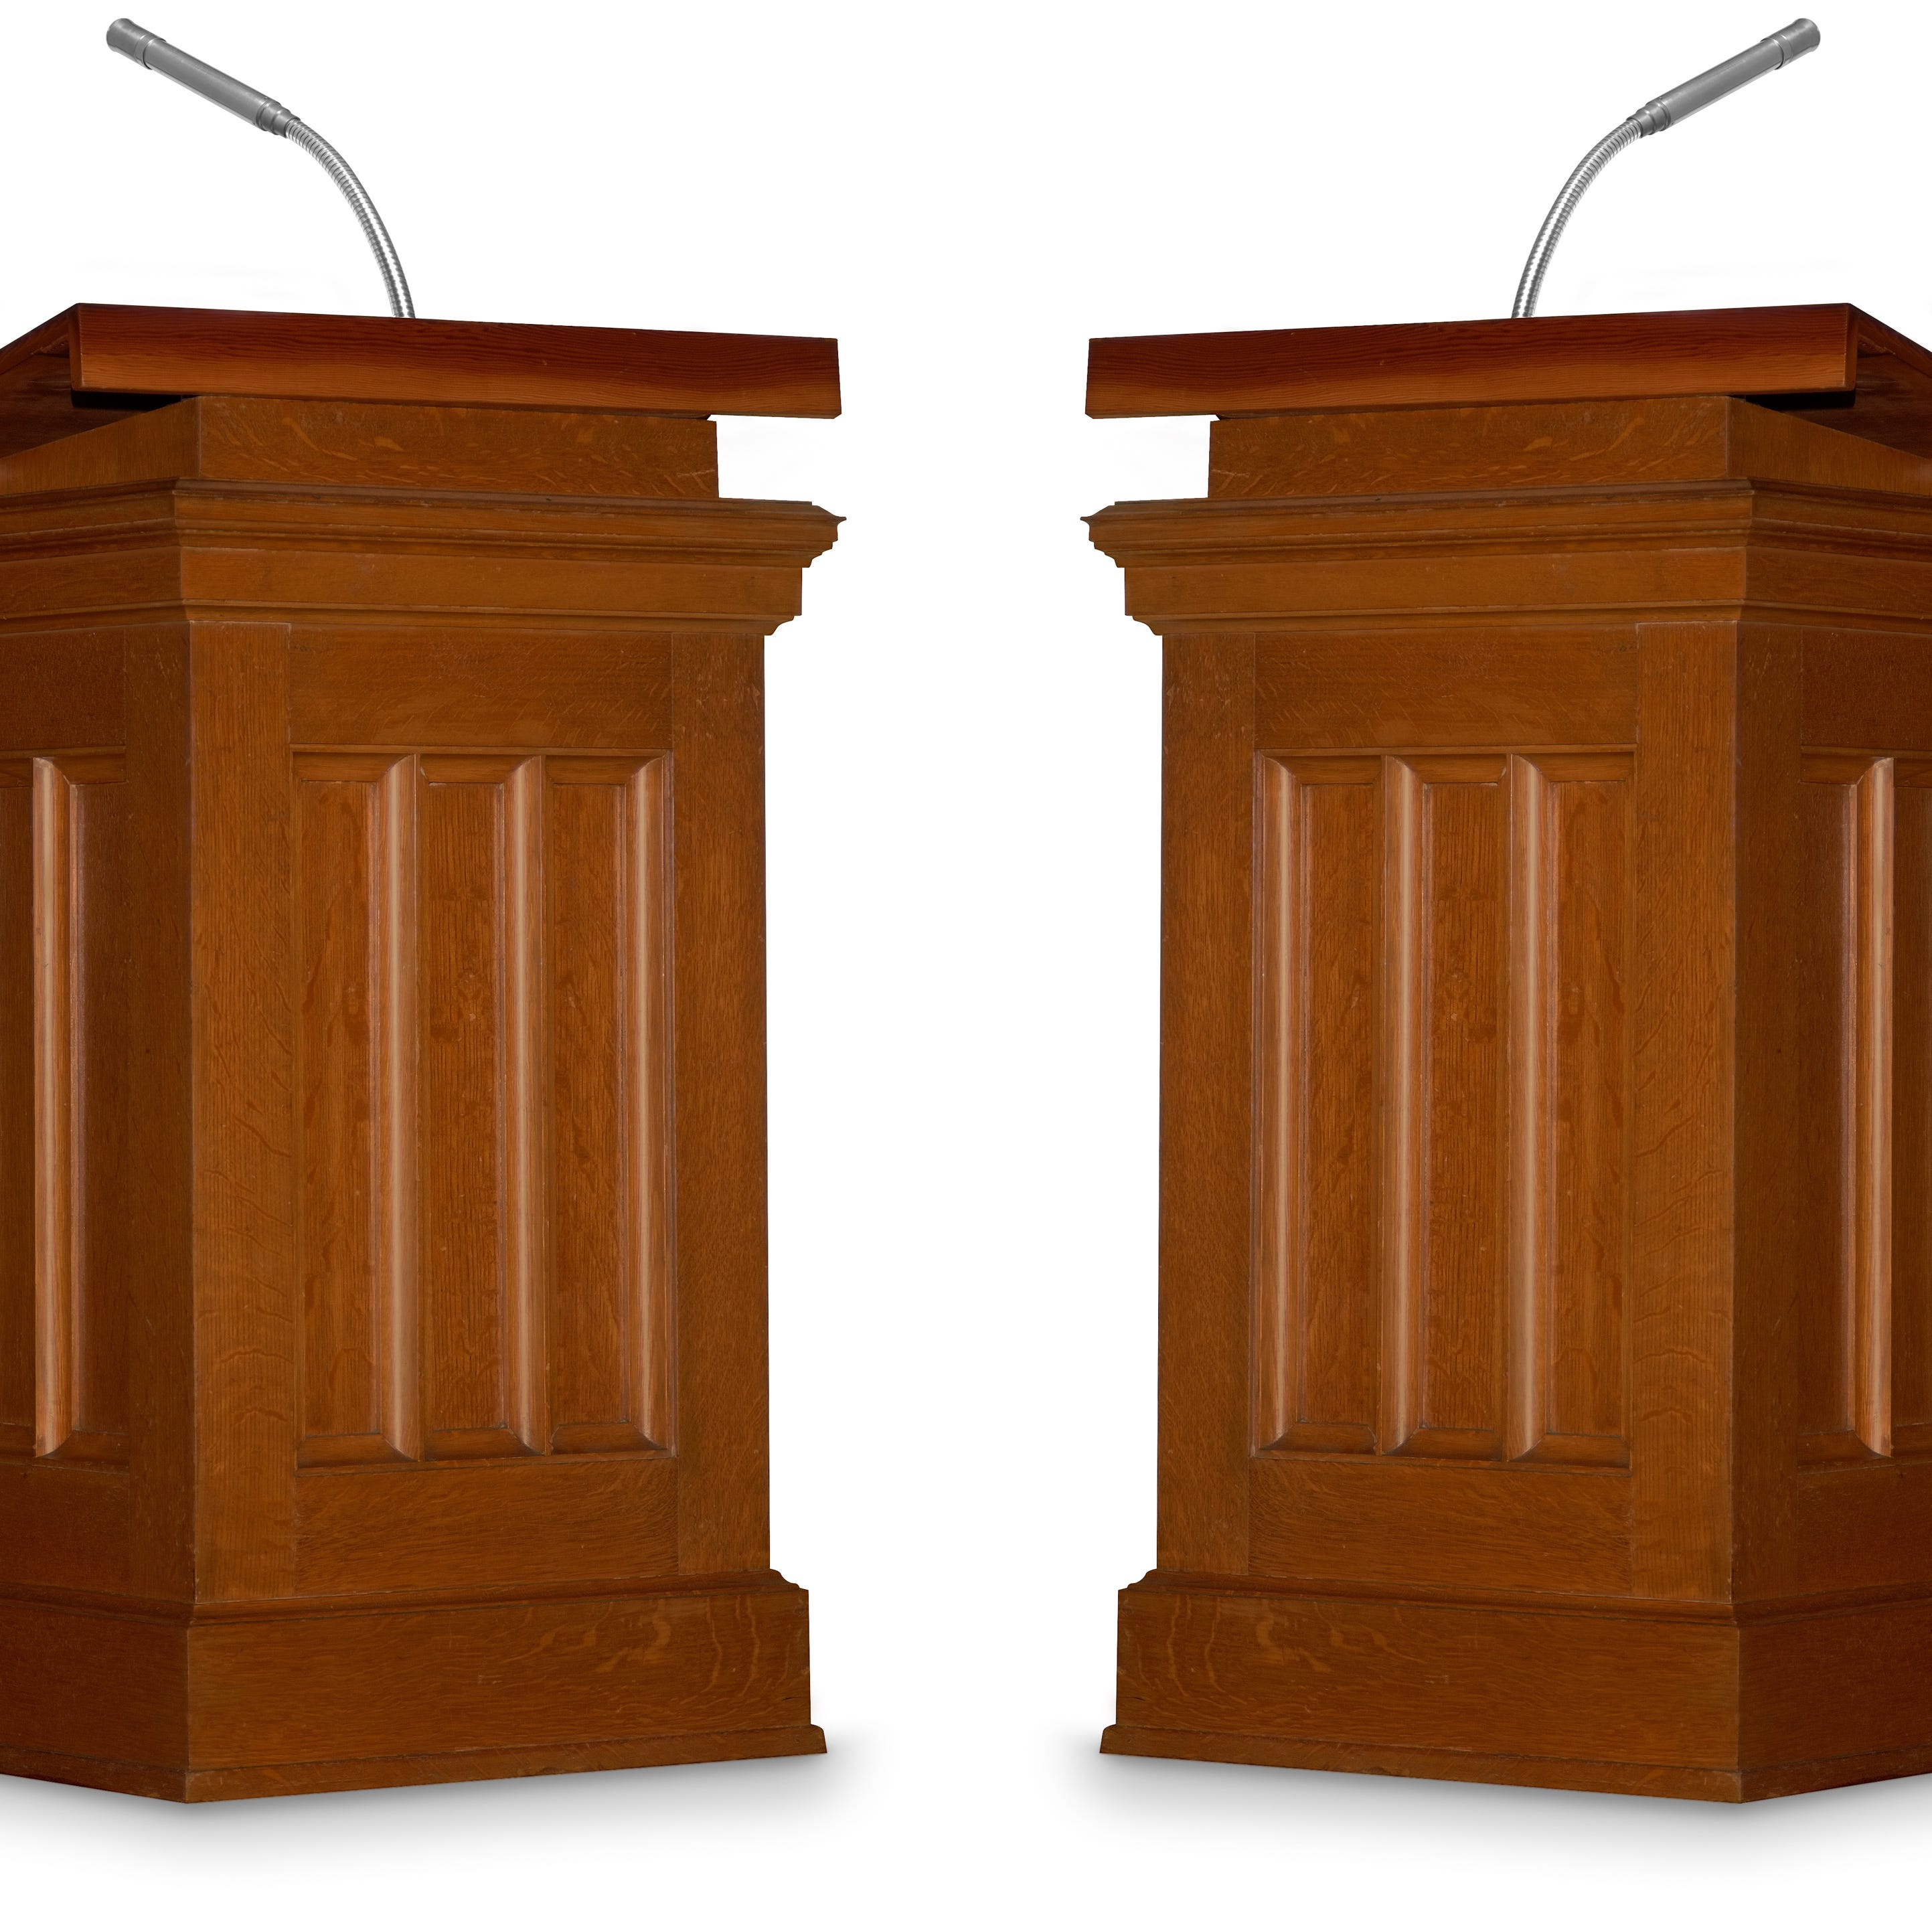 We probably won't see a Reno mayoral debate. Here's why